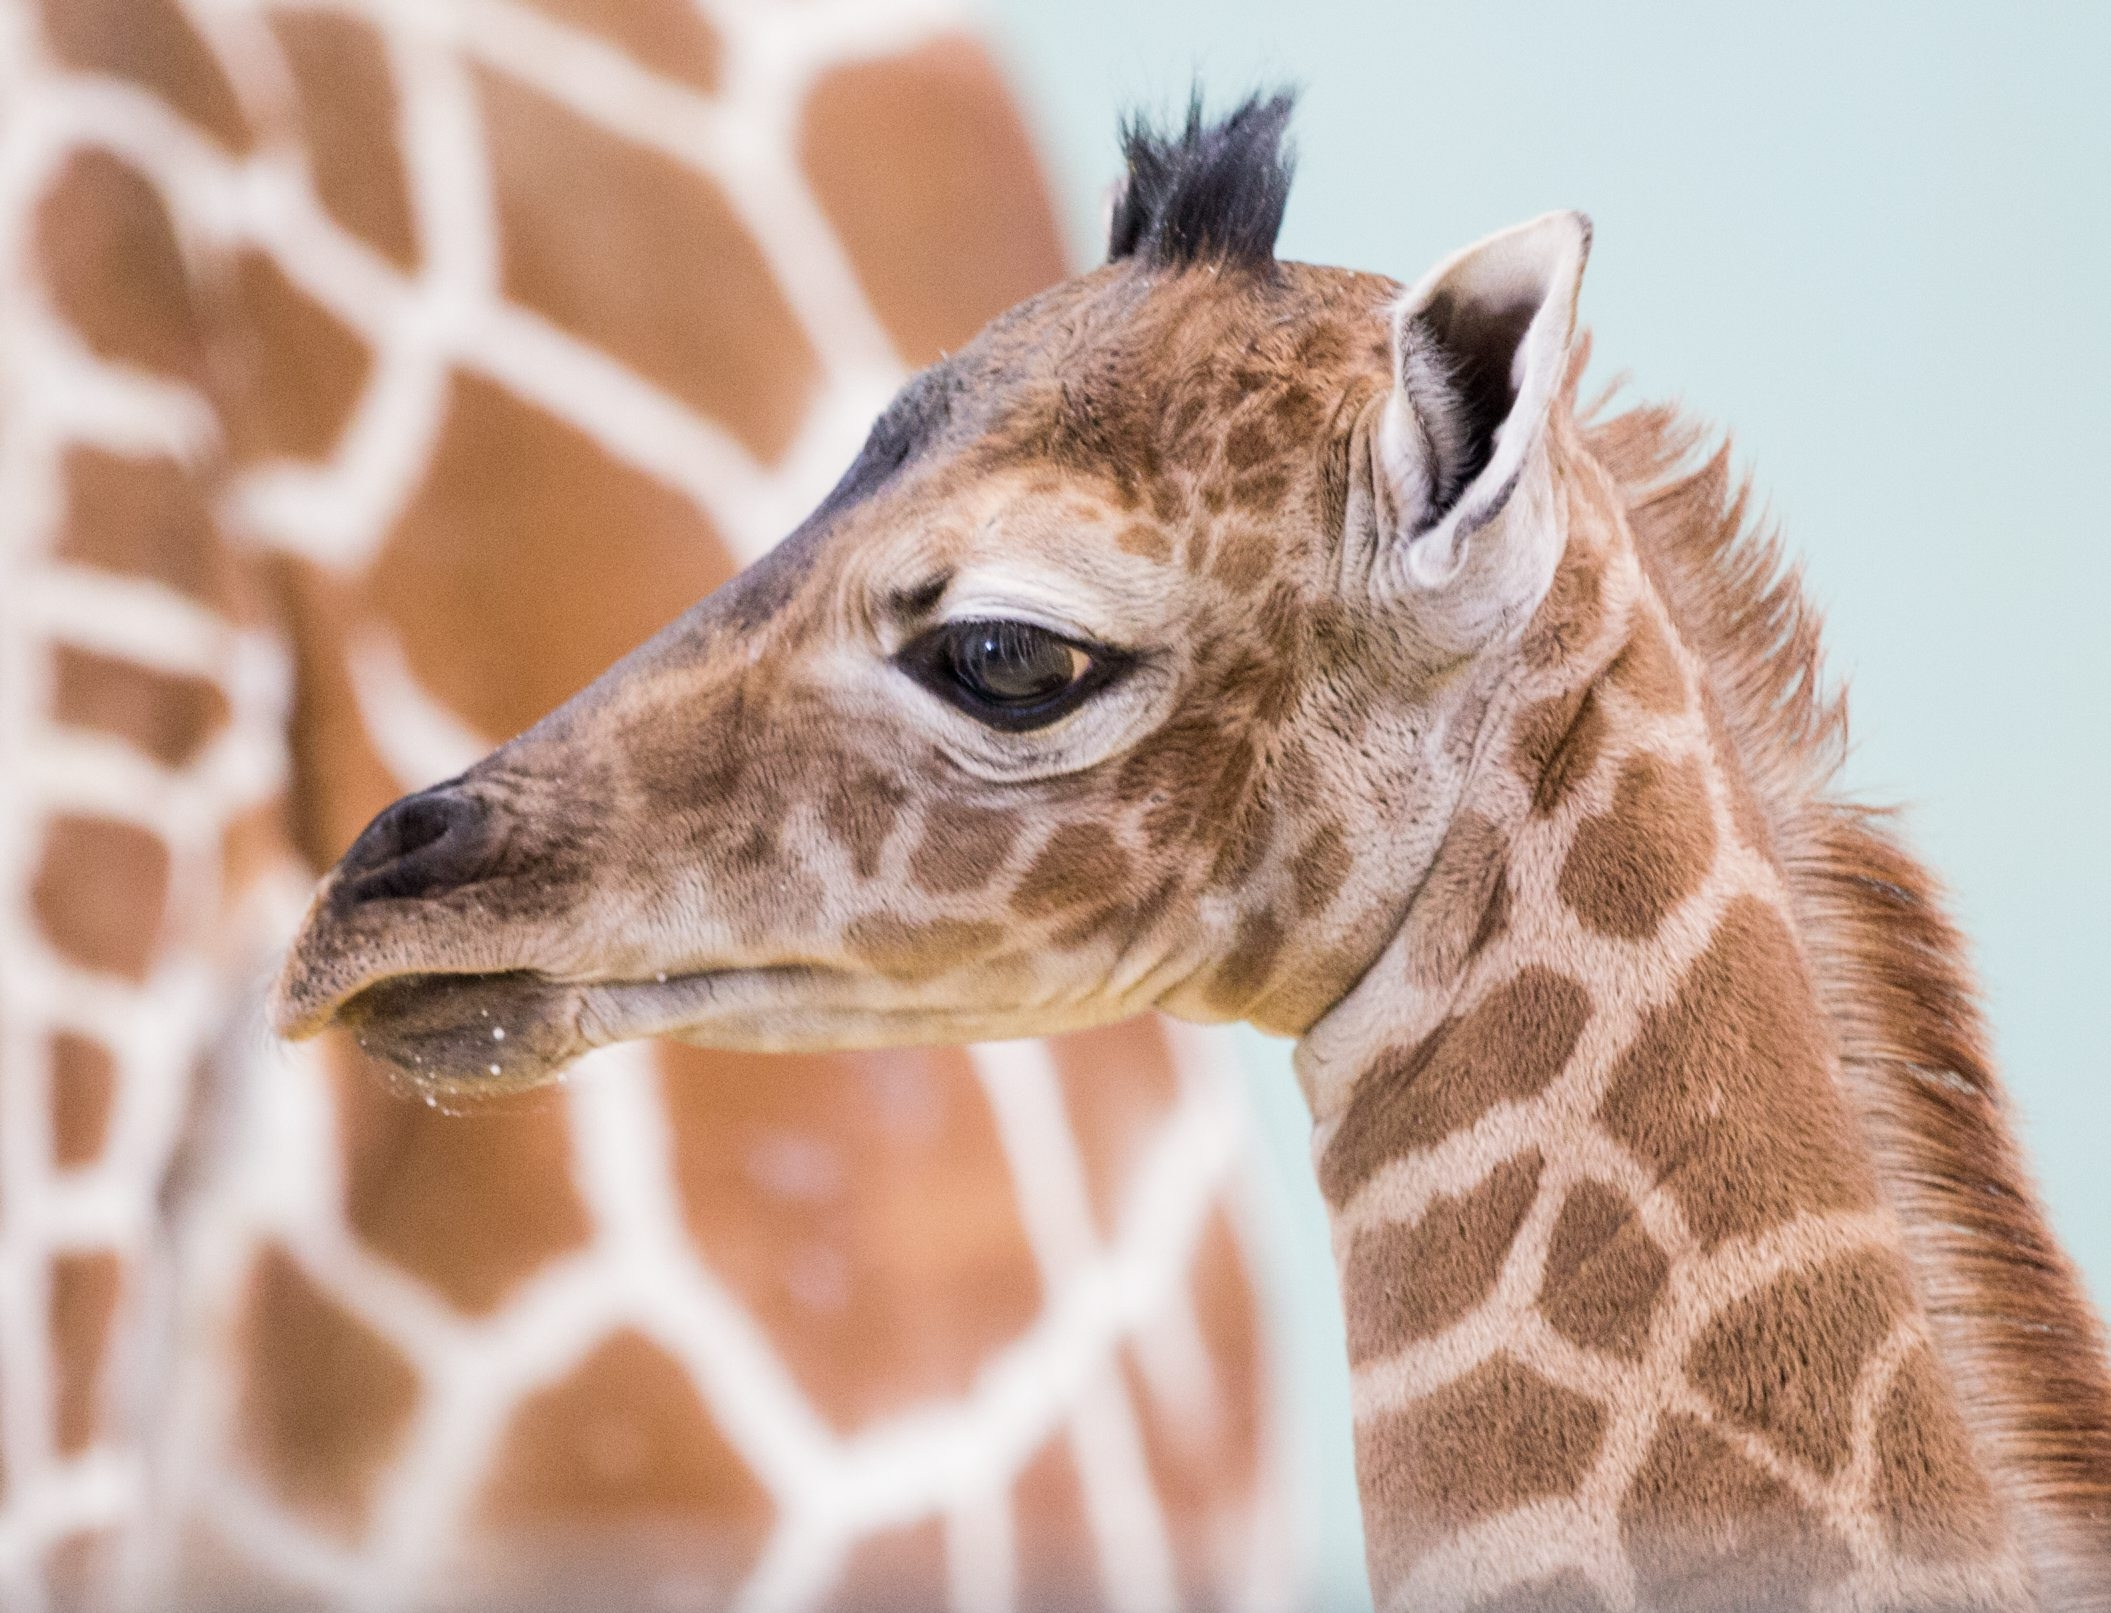 The Buffalo Zoo's newest baby giraffe - Zuri - was born on Saturday.